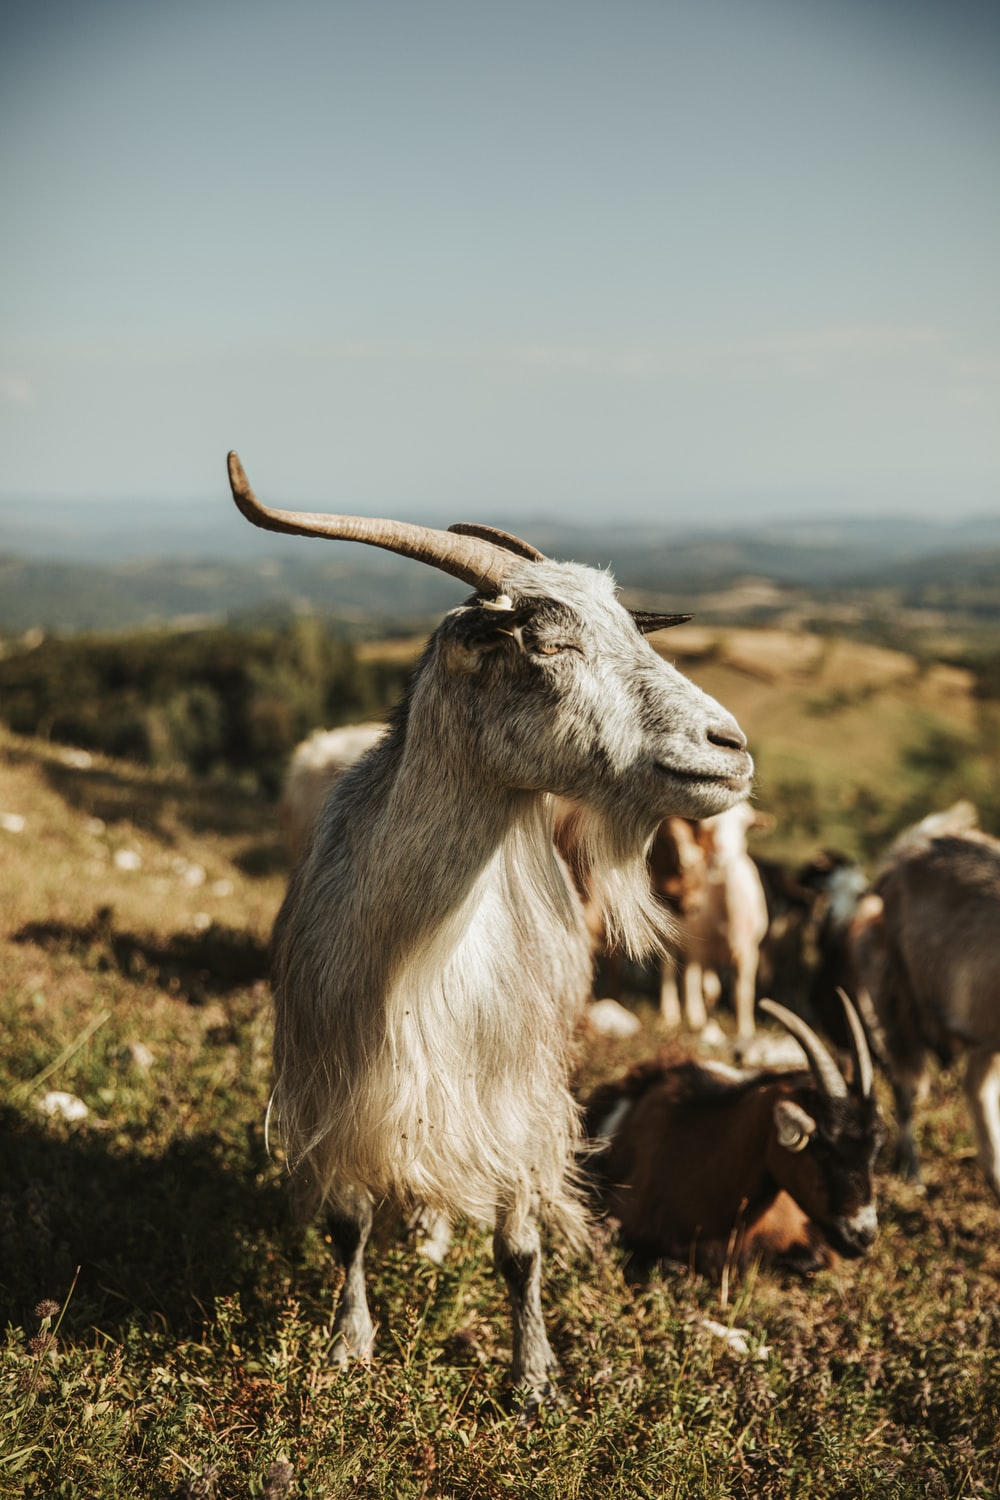 white and brown goat on green grass during daytime